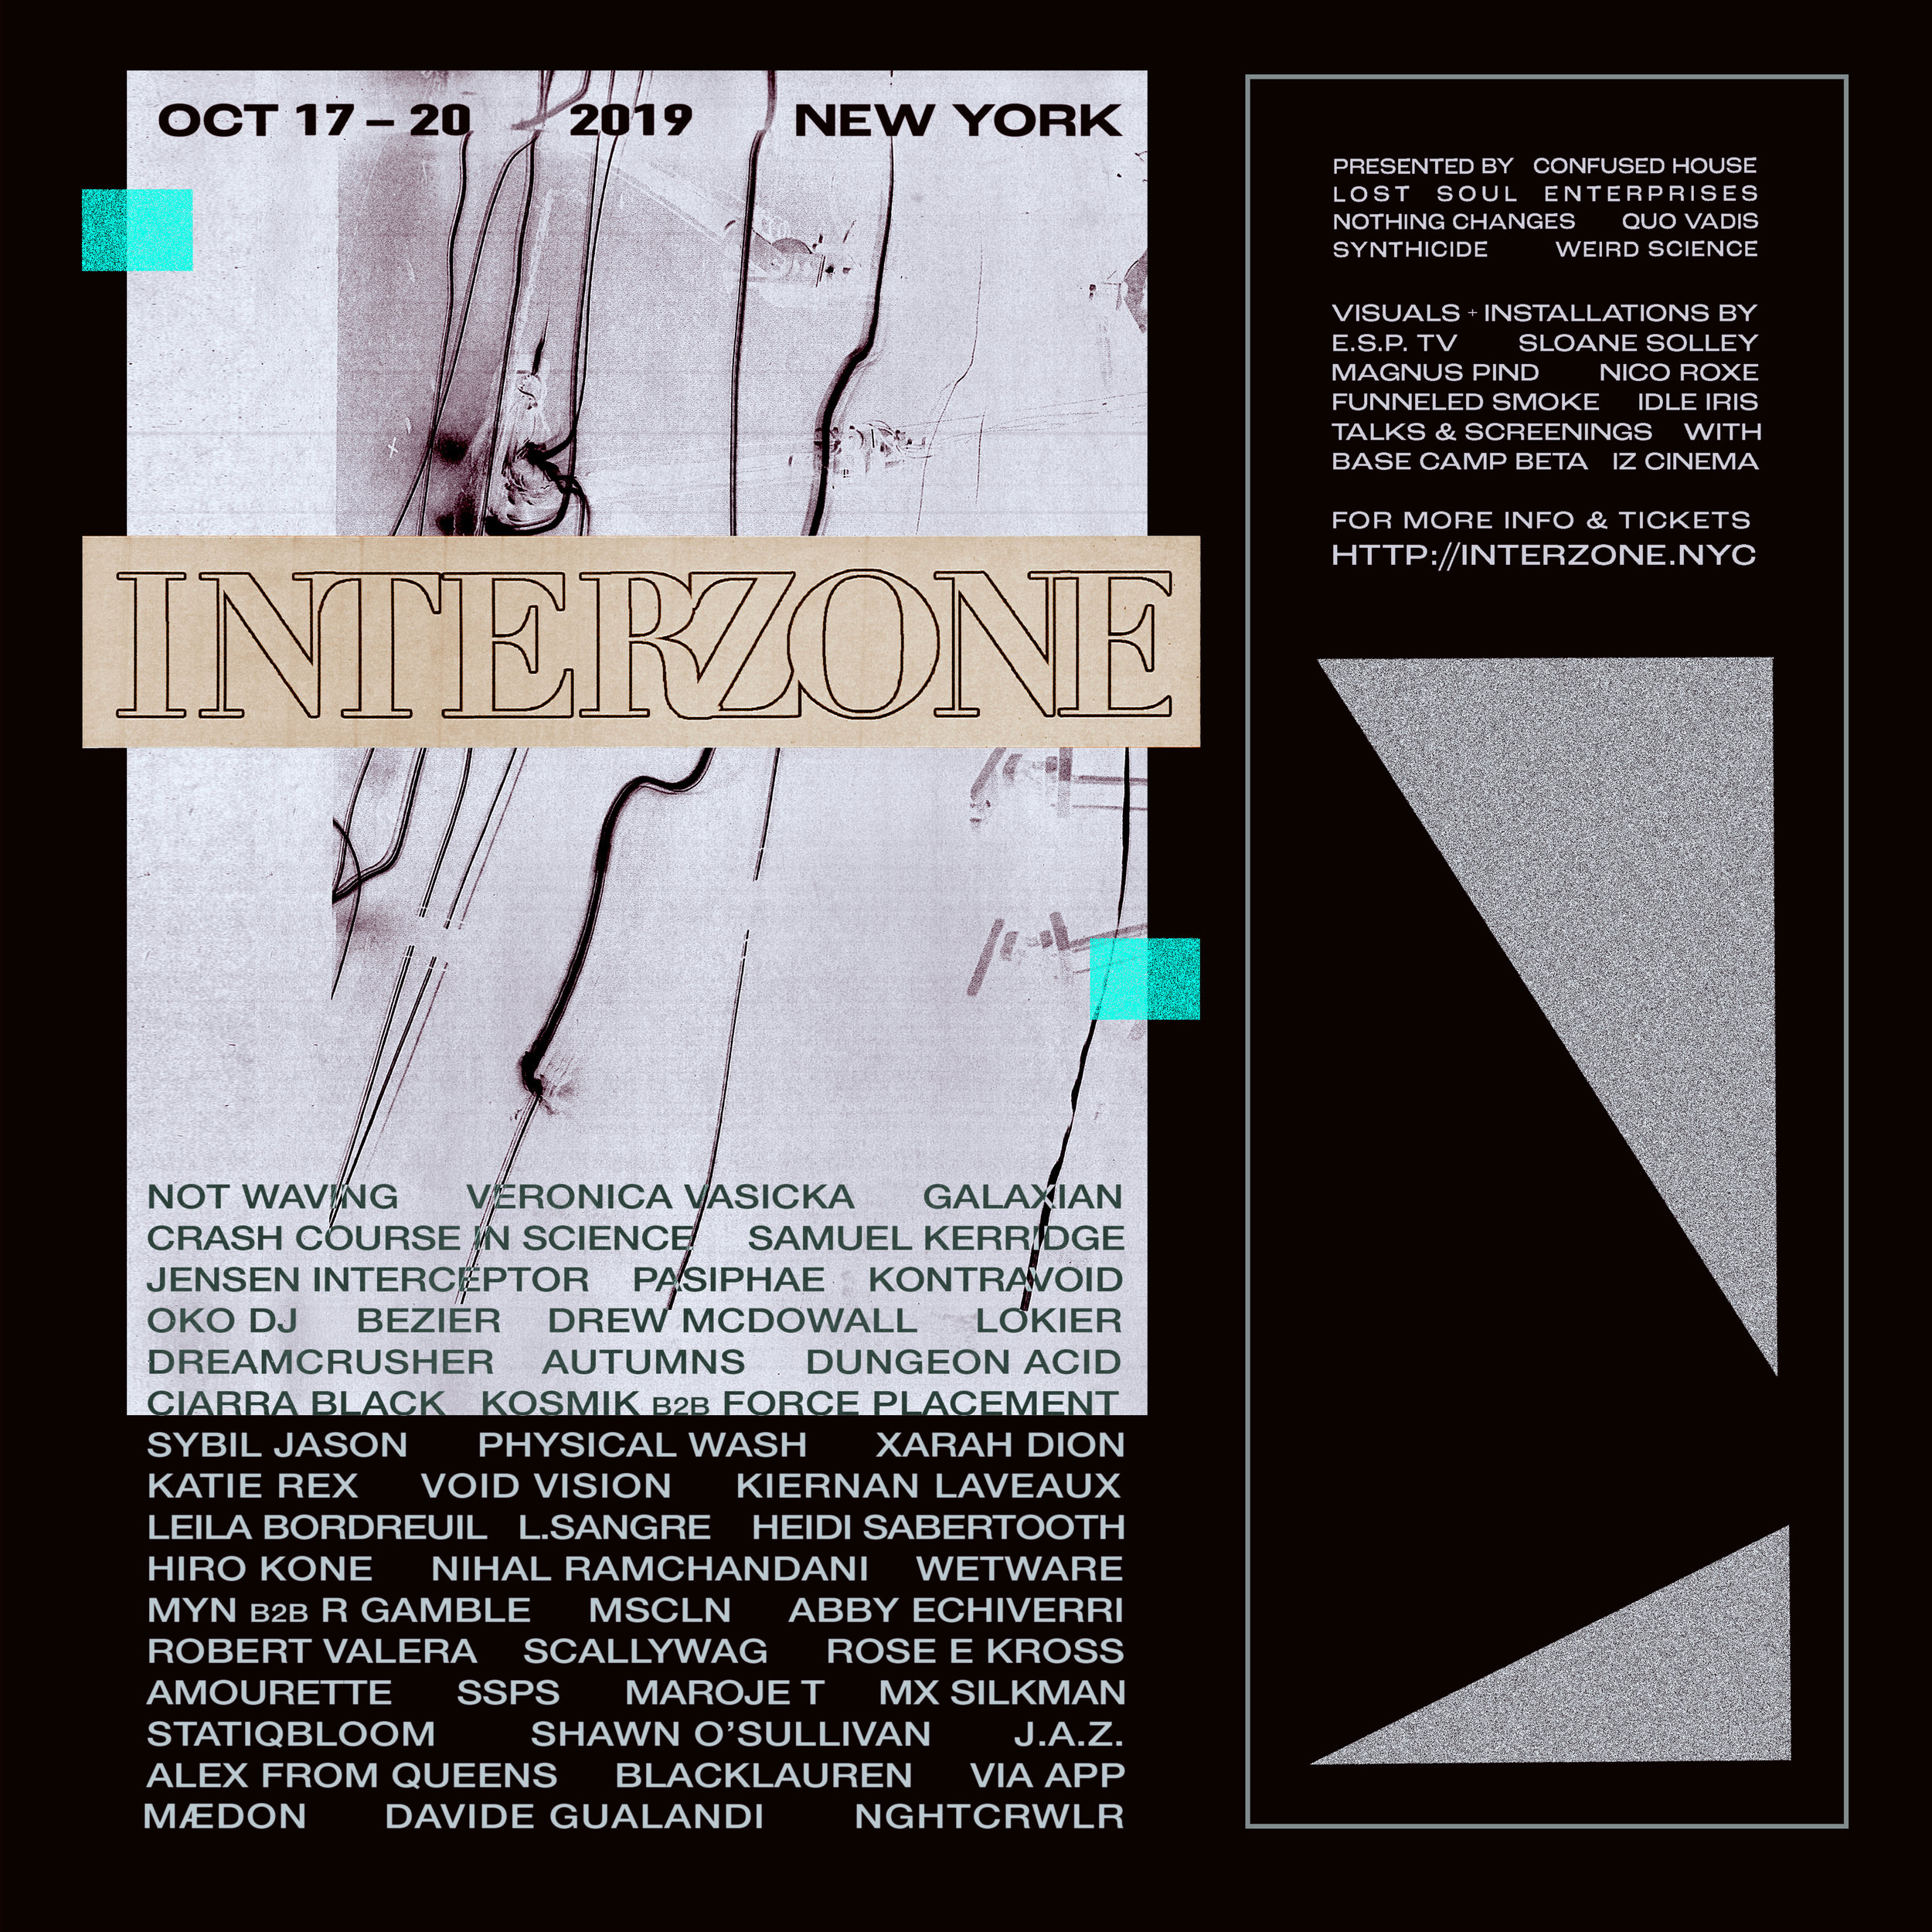 Announcing INTERZONE PHASE TWO including FULL LINEUP  ⁣⁣  More info & passes here:  http://interzone.nyc    Buy individual show tickets:  http://residentadvisor.net/to/Interzone